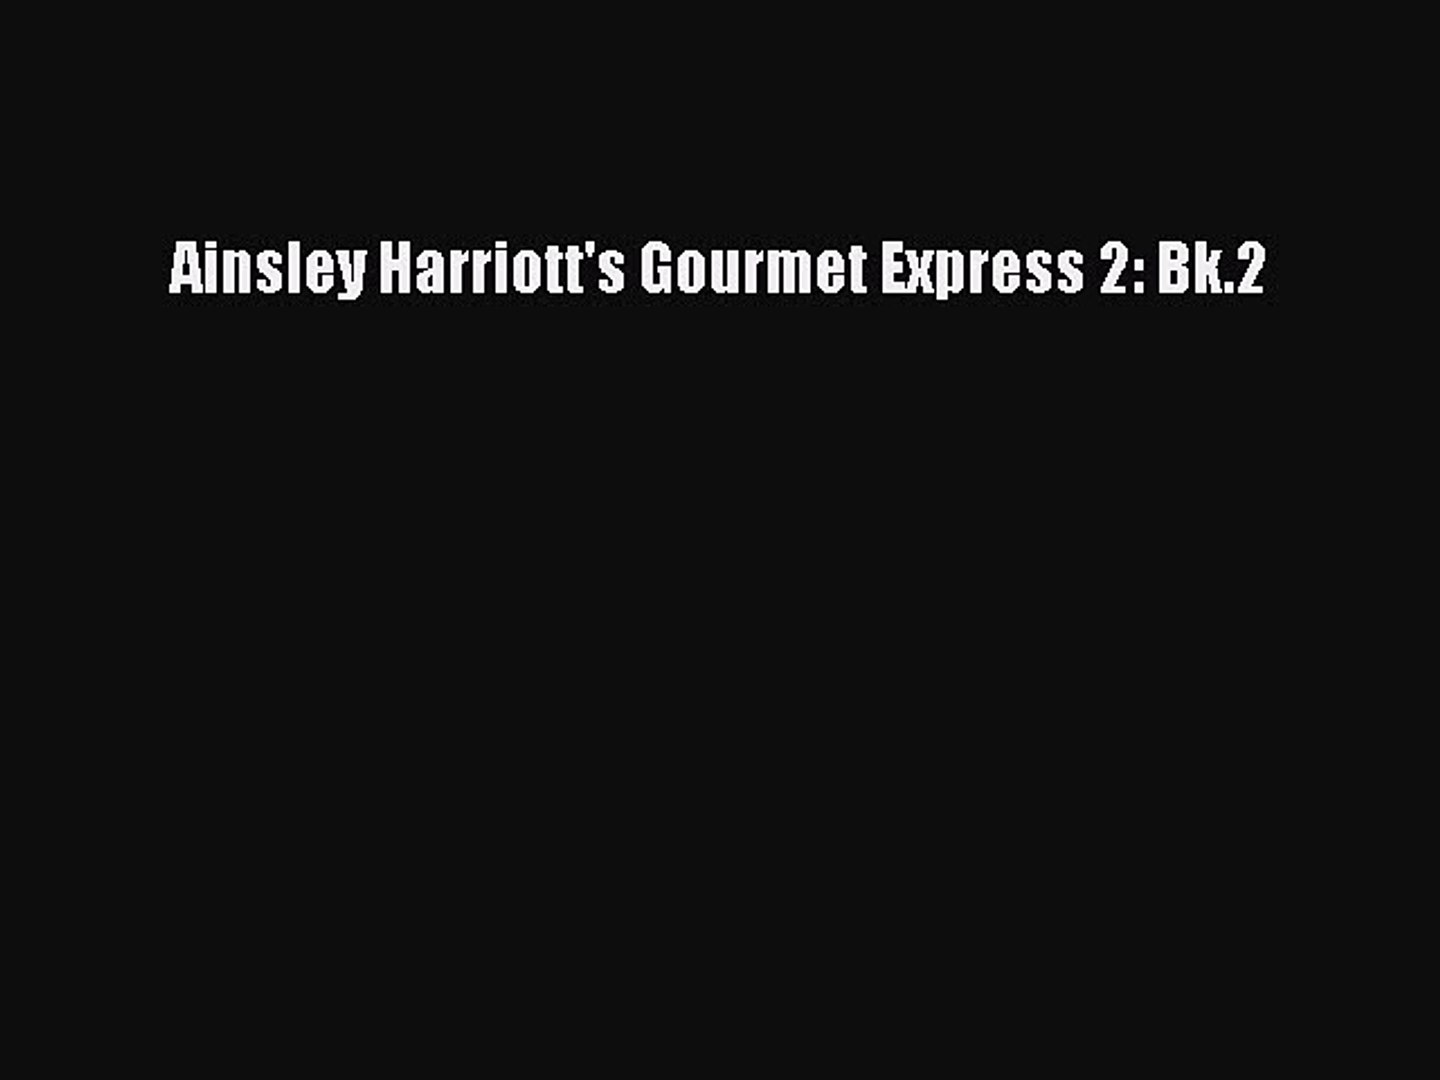 Ainsley Harriotts Gourmet Express 2: Bk.2